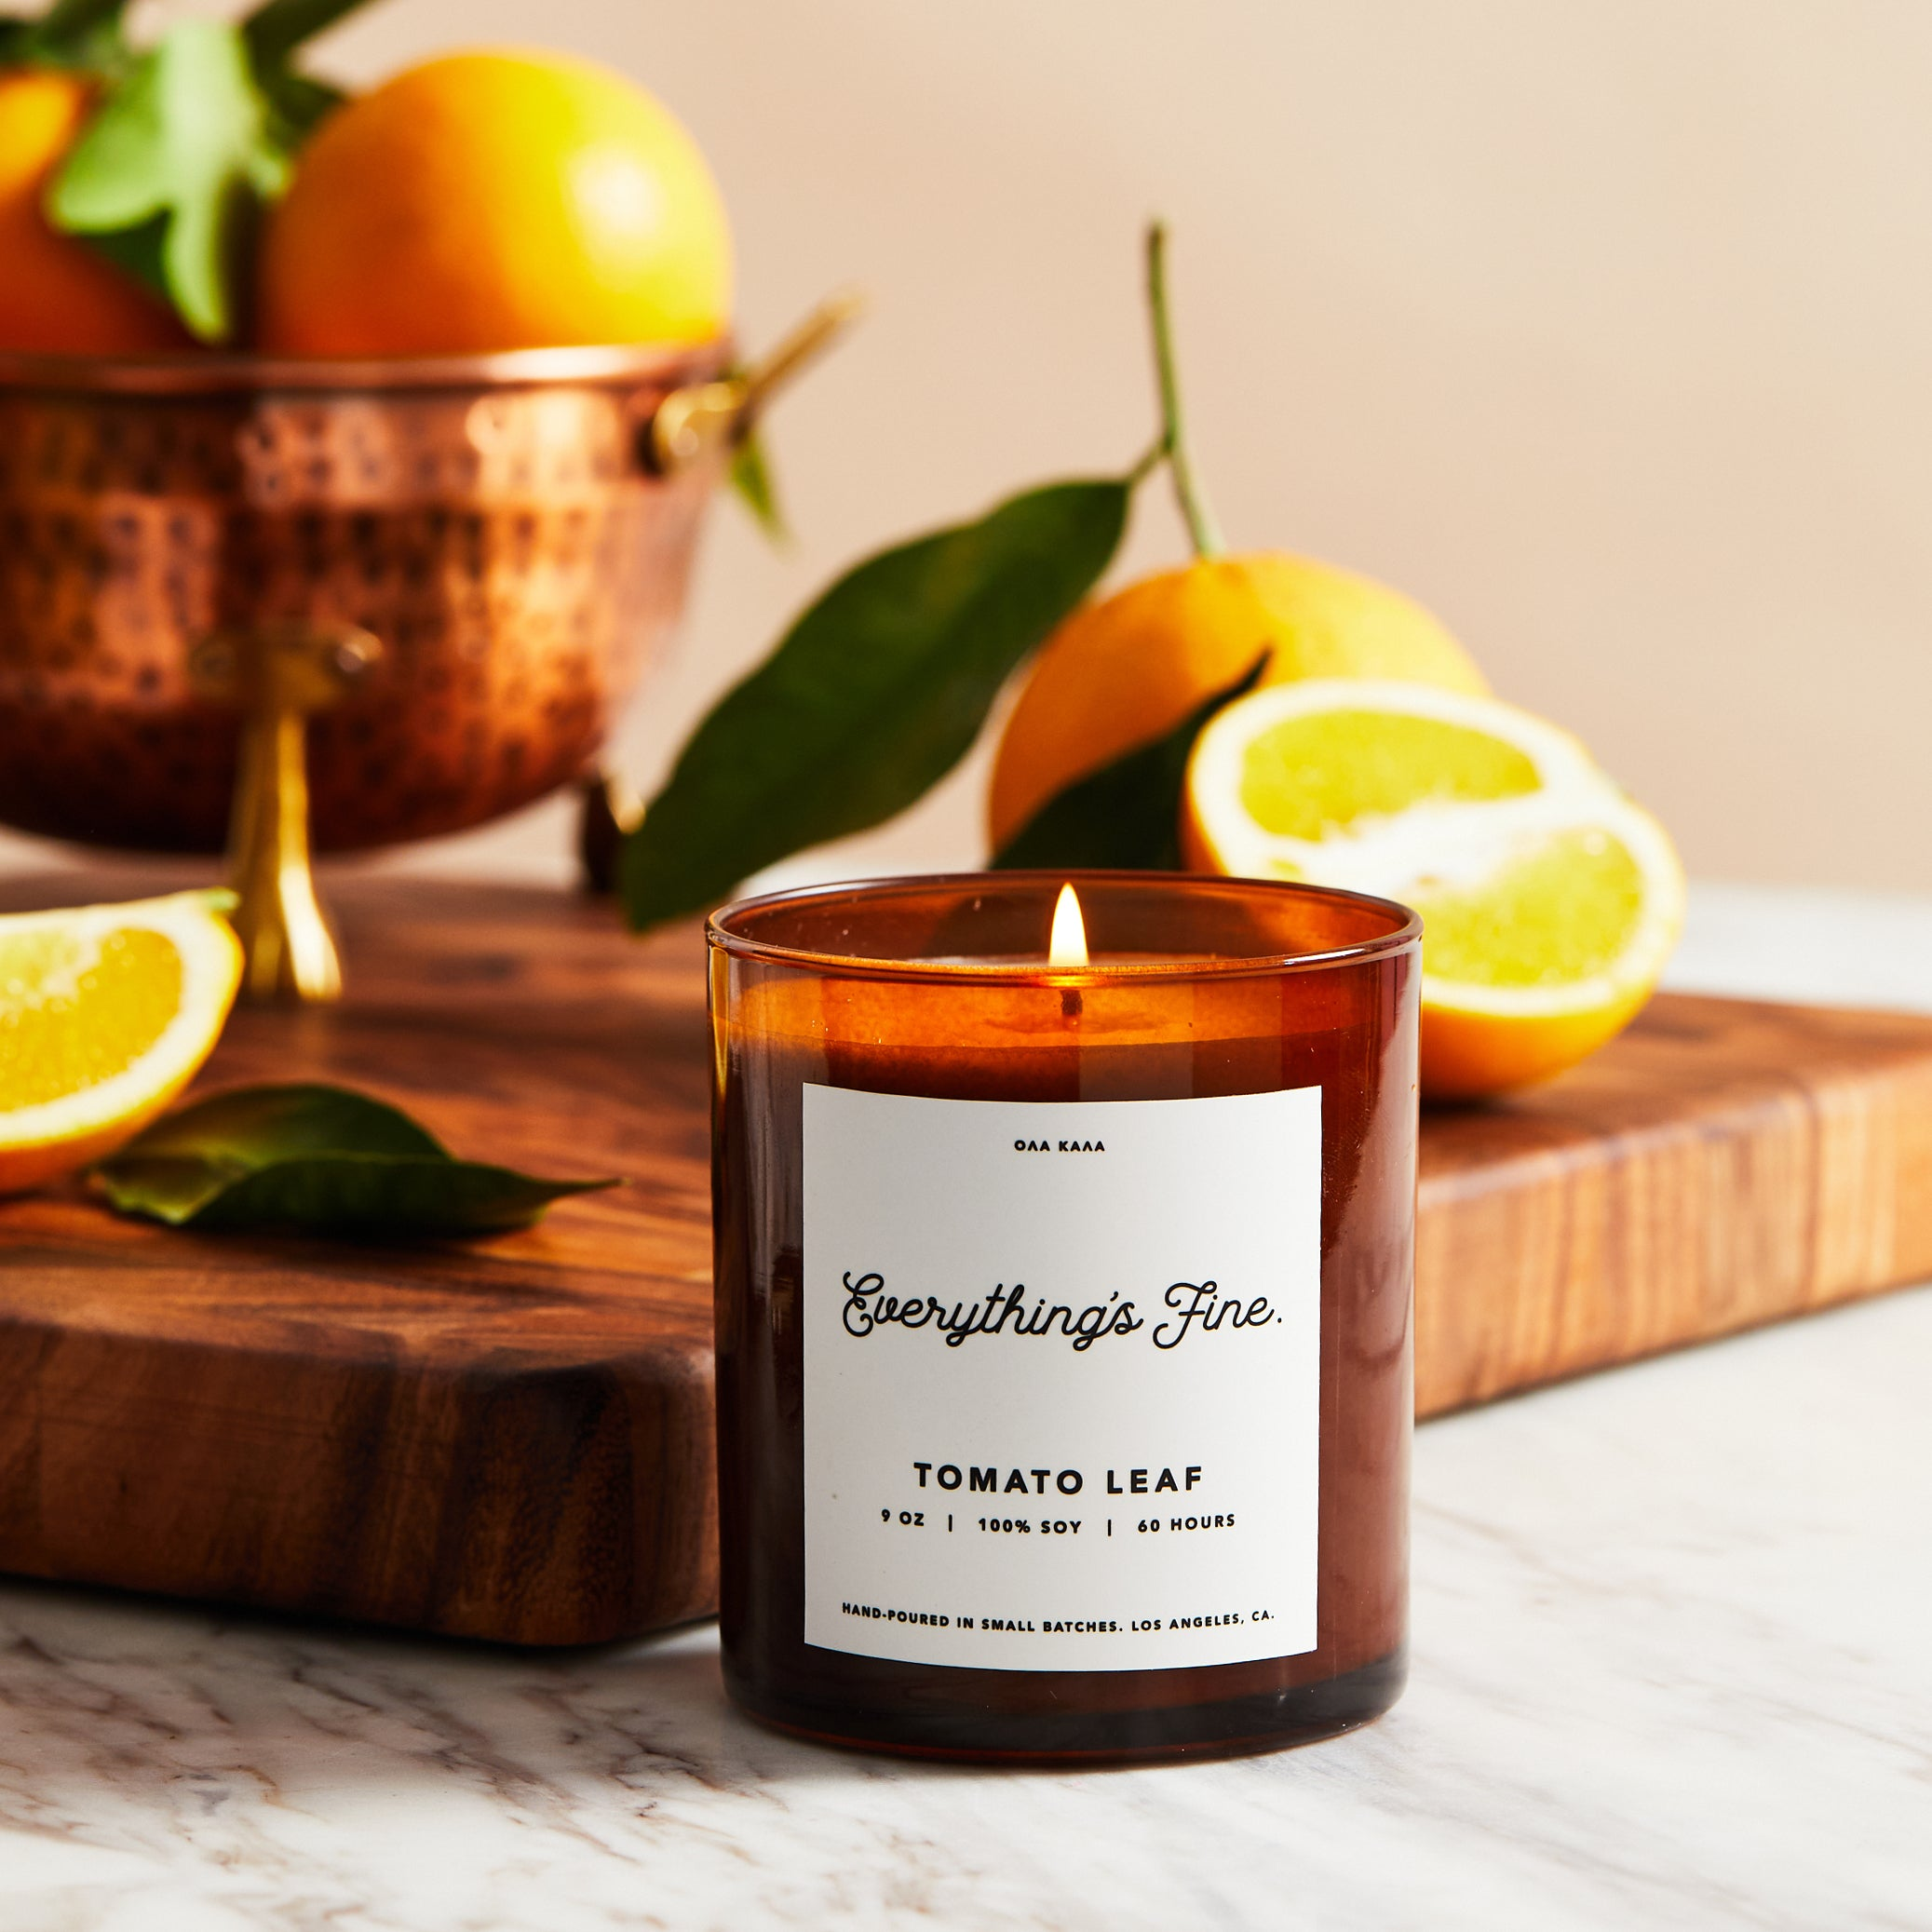 100% soy wax, hand-poured in ultra small batches in Los Angeles, CA. Made with a lead-free cotton wick and premium fragrance and essential oils for a clean burn. Tomato Leaf, Lemon Peel, Lemongrass, Basil, Thyme, Green Leaves, Moss